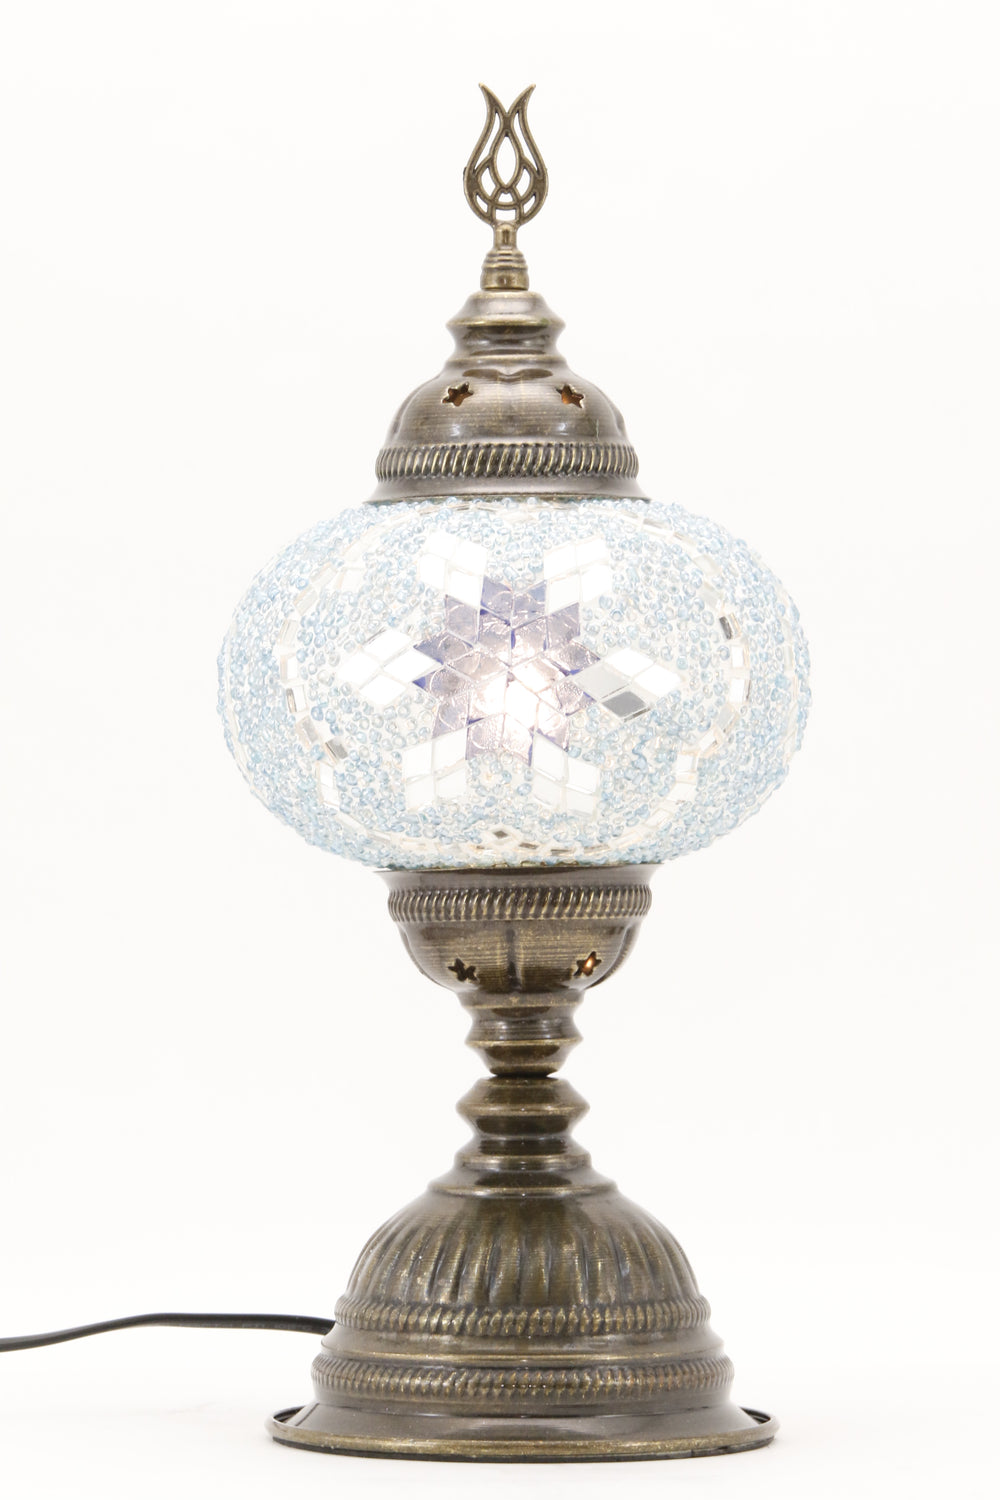 TURKISH MOSAIC TABLE LAMP MB3 BLUE-TURNED ON